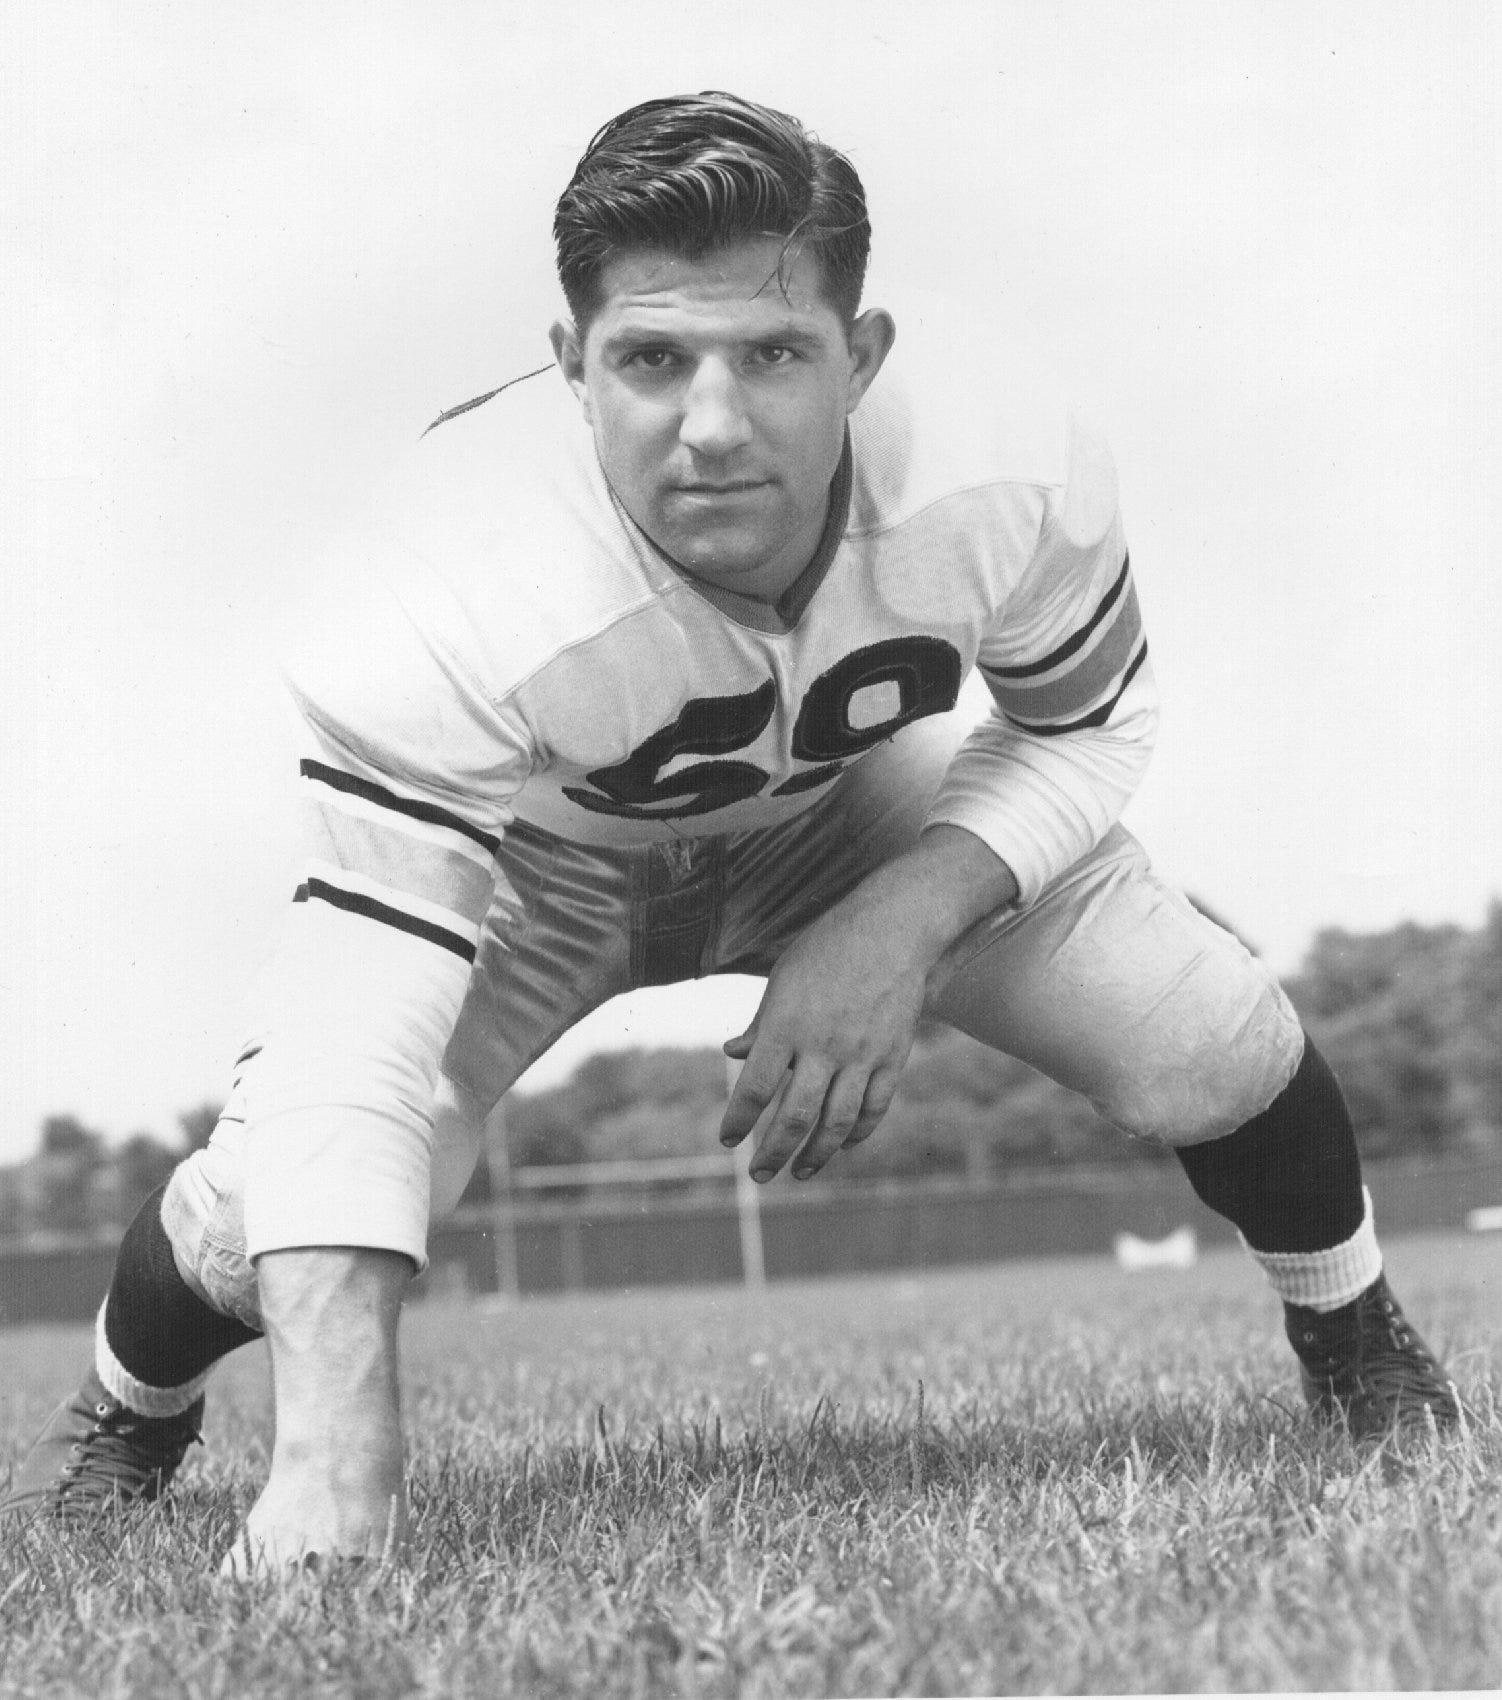 Even though he only played for Purdue in 1943, Alex Agase is a member of the Boilermakers' All-Time team.